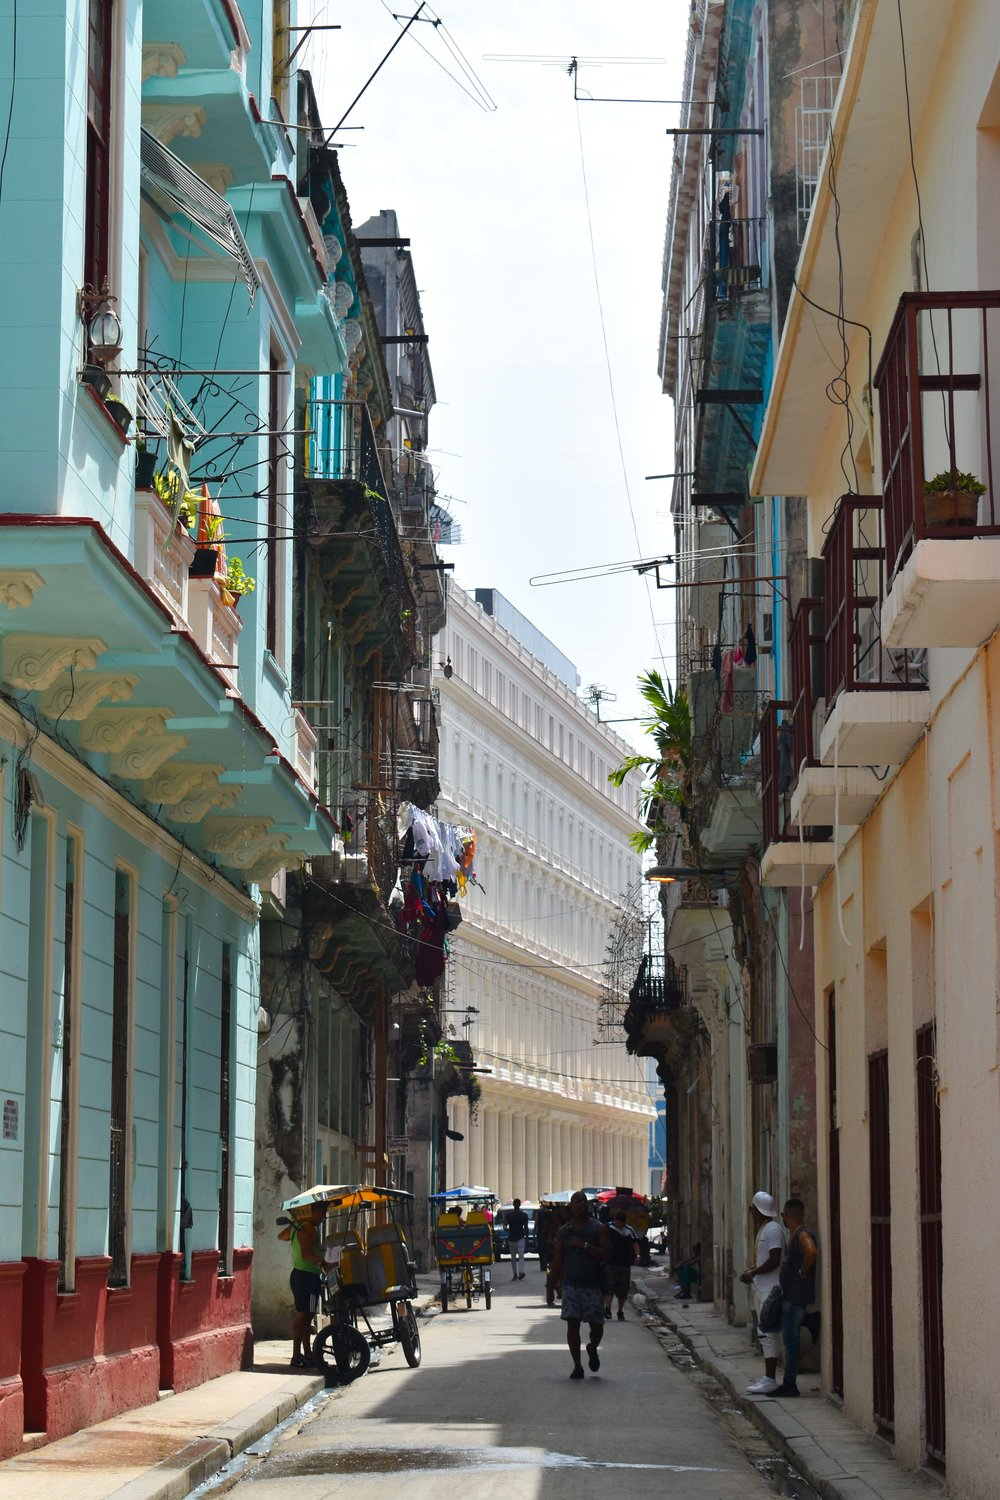 greg mcgregorson havana cuba travel blog gregsstyleguide